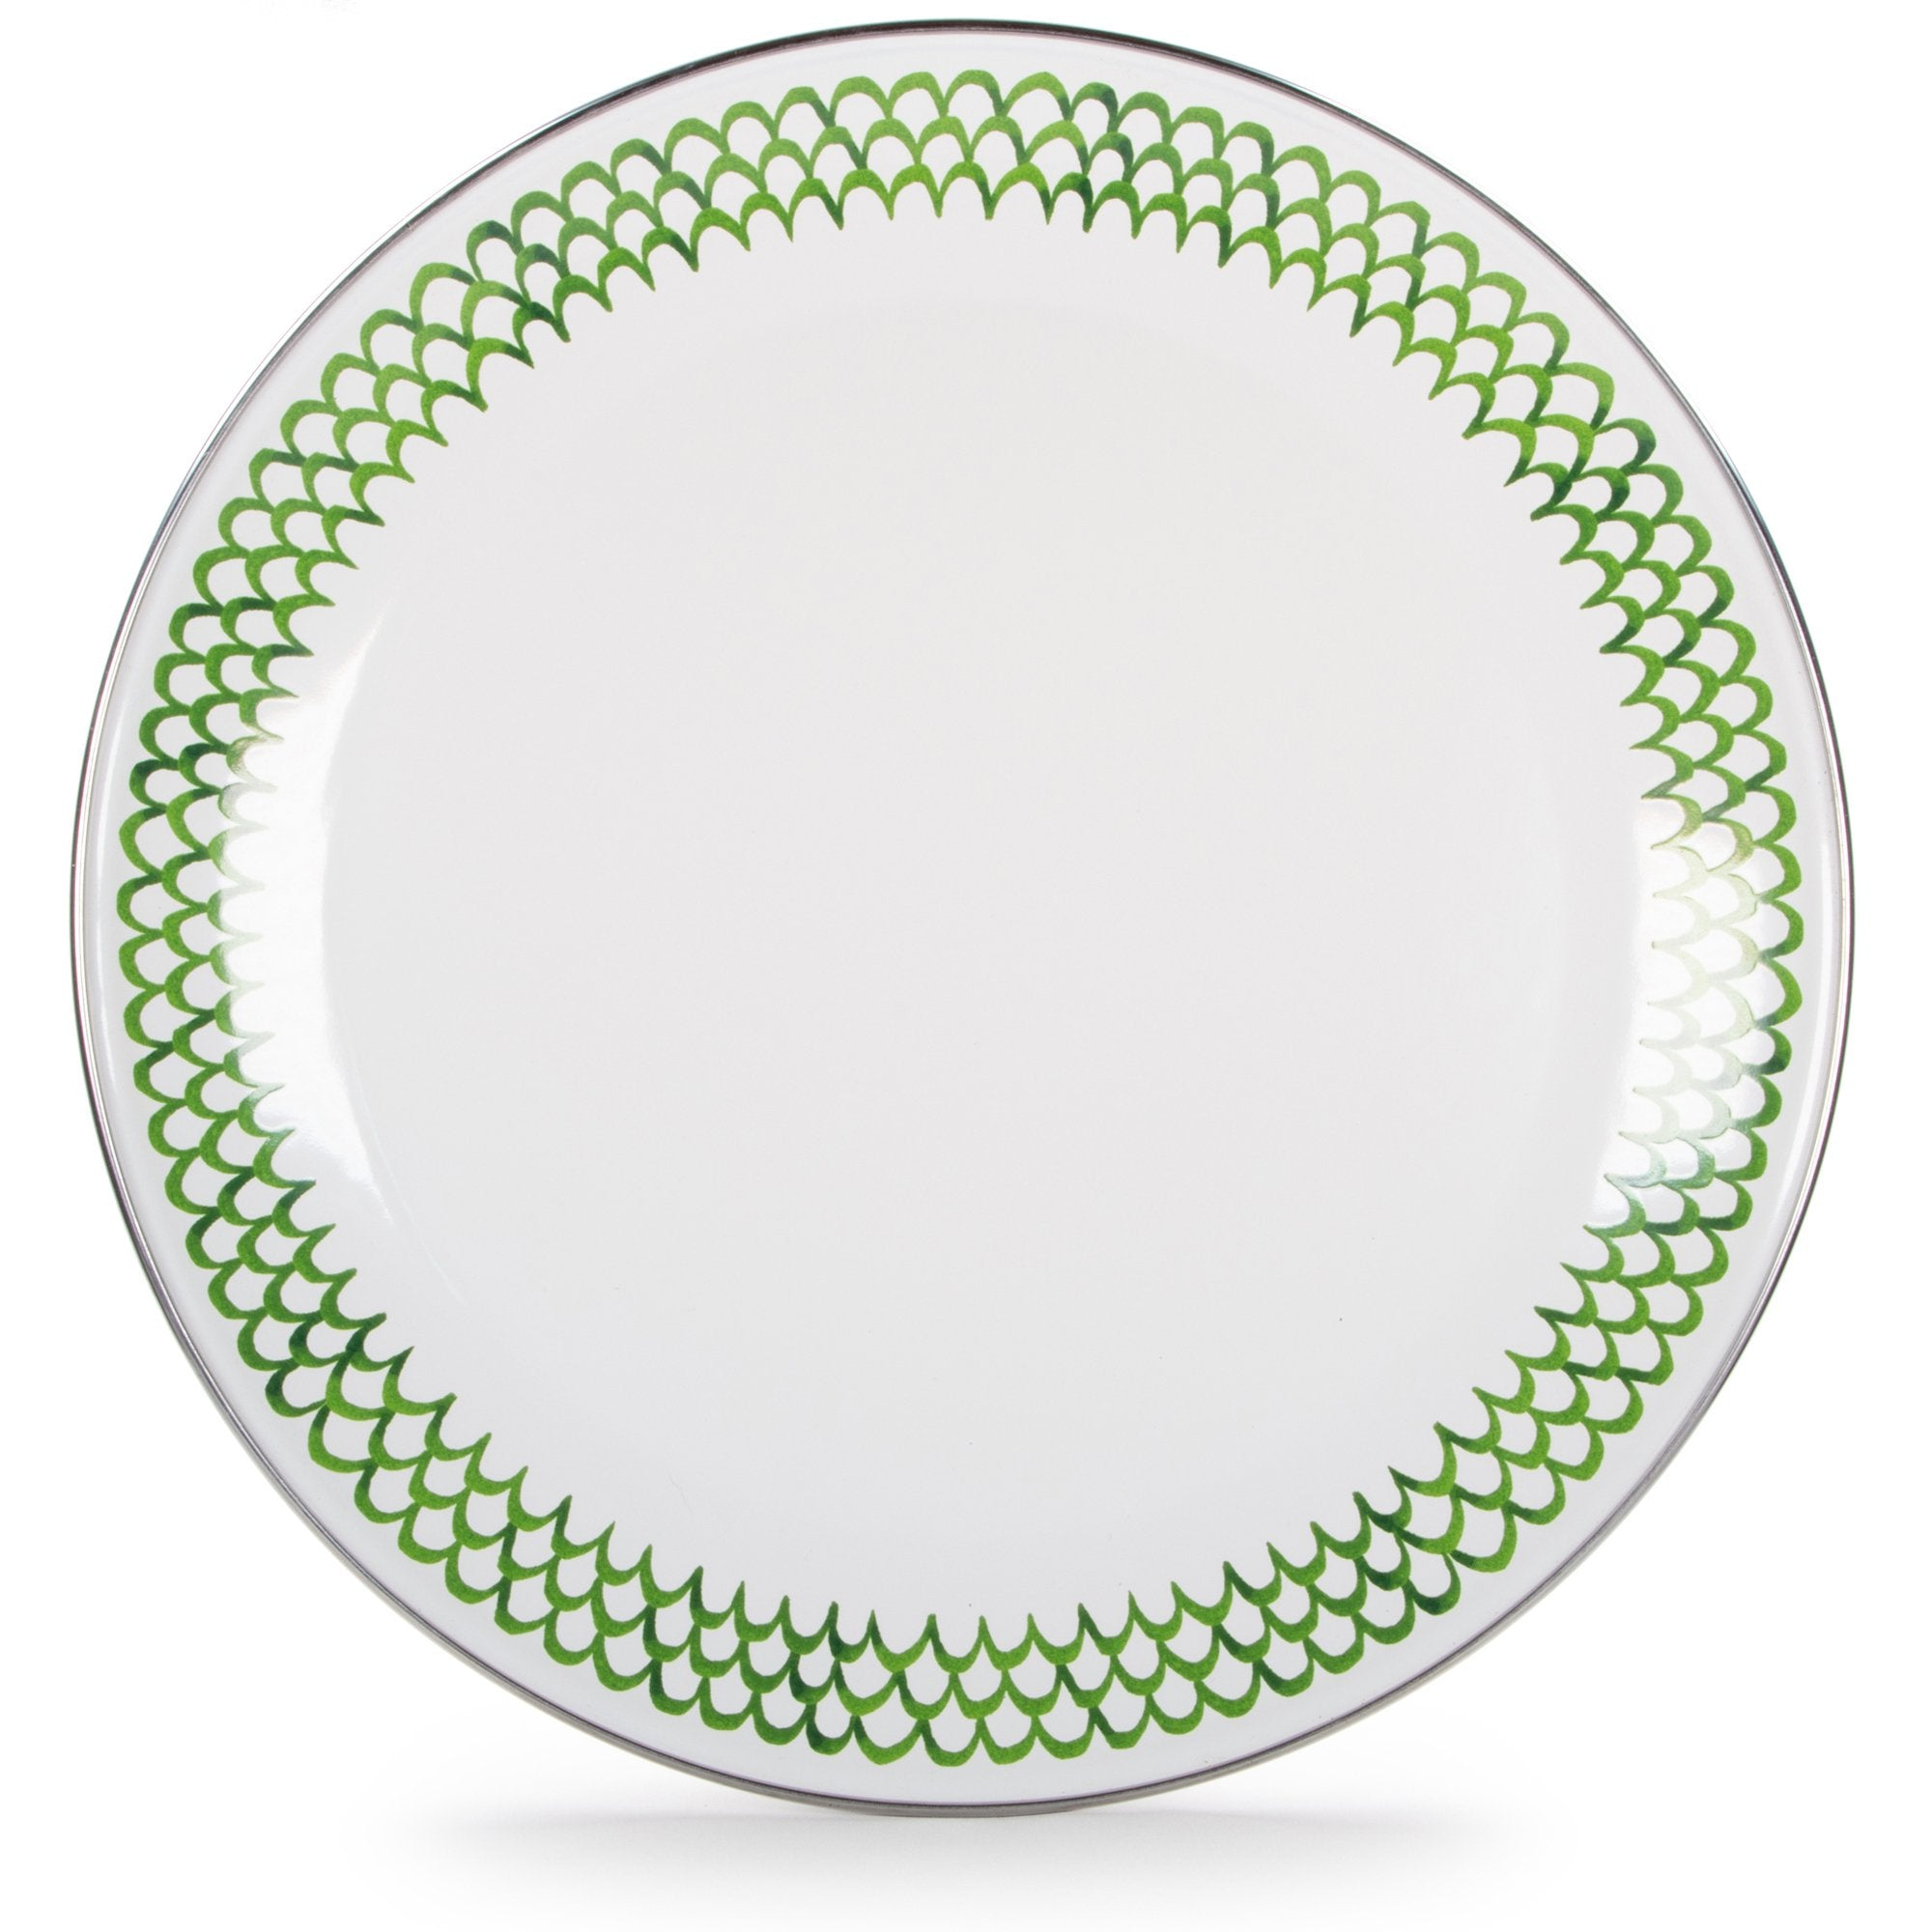 GS18 - Green Scallop Catering Bowl Image 2